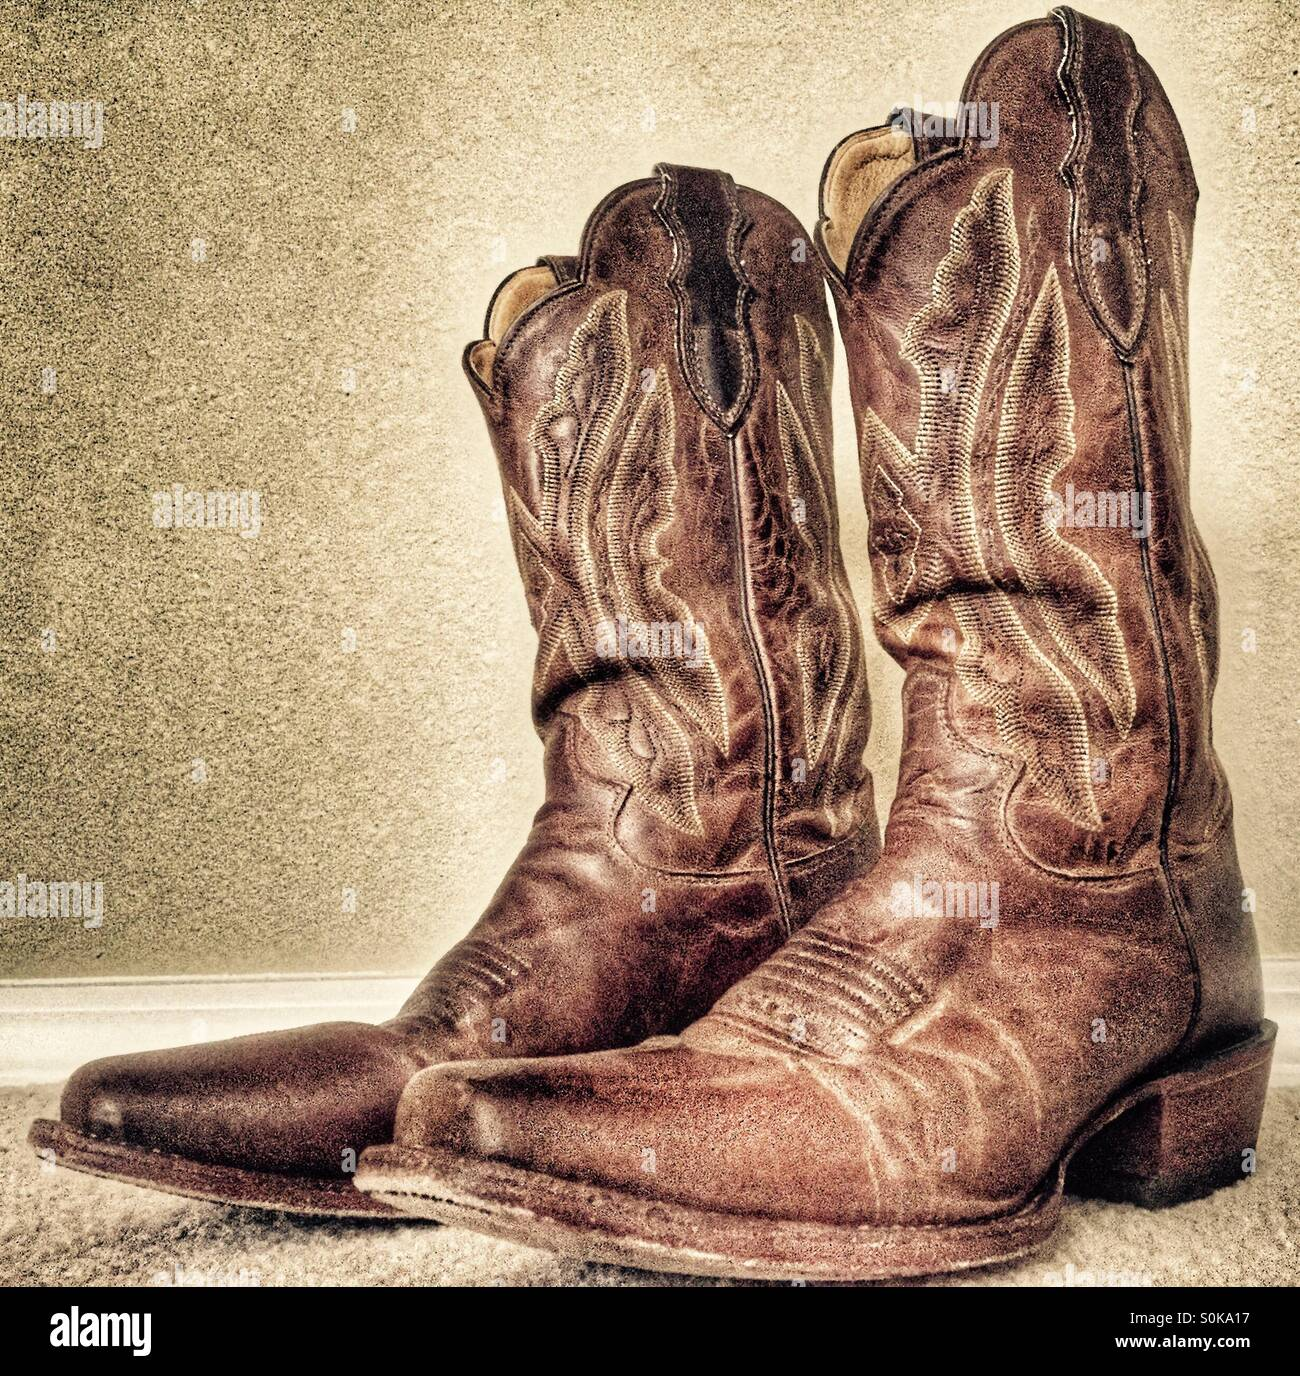 Worn cowboy boots Stock Photo, Royalty Free Image: 310211587 - Alamy